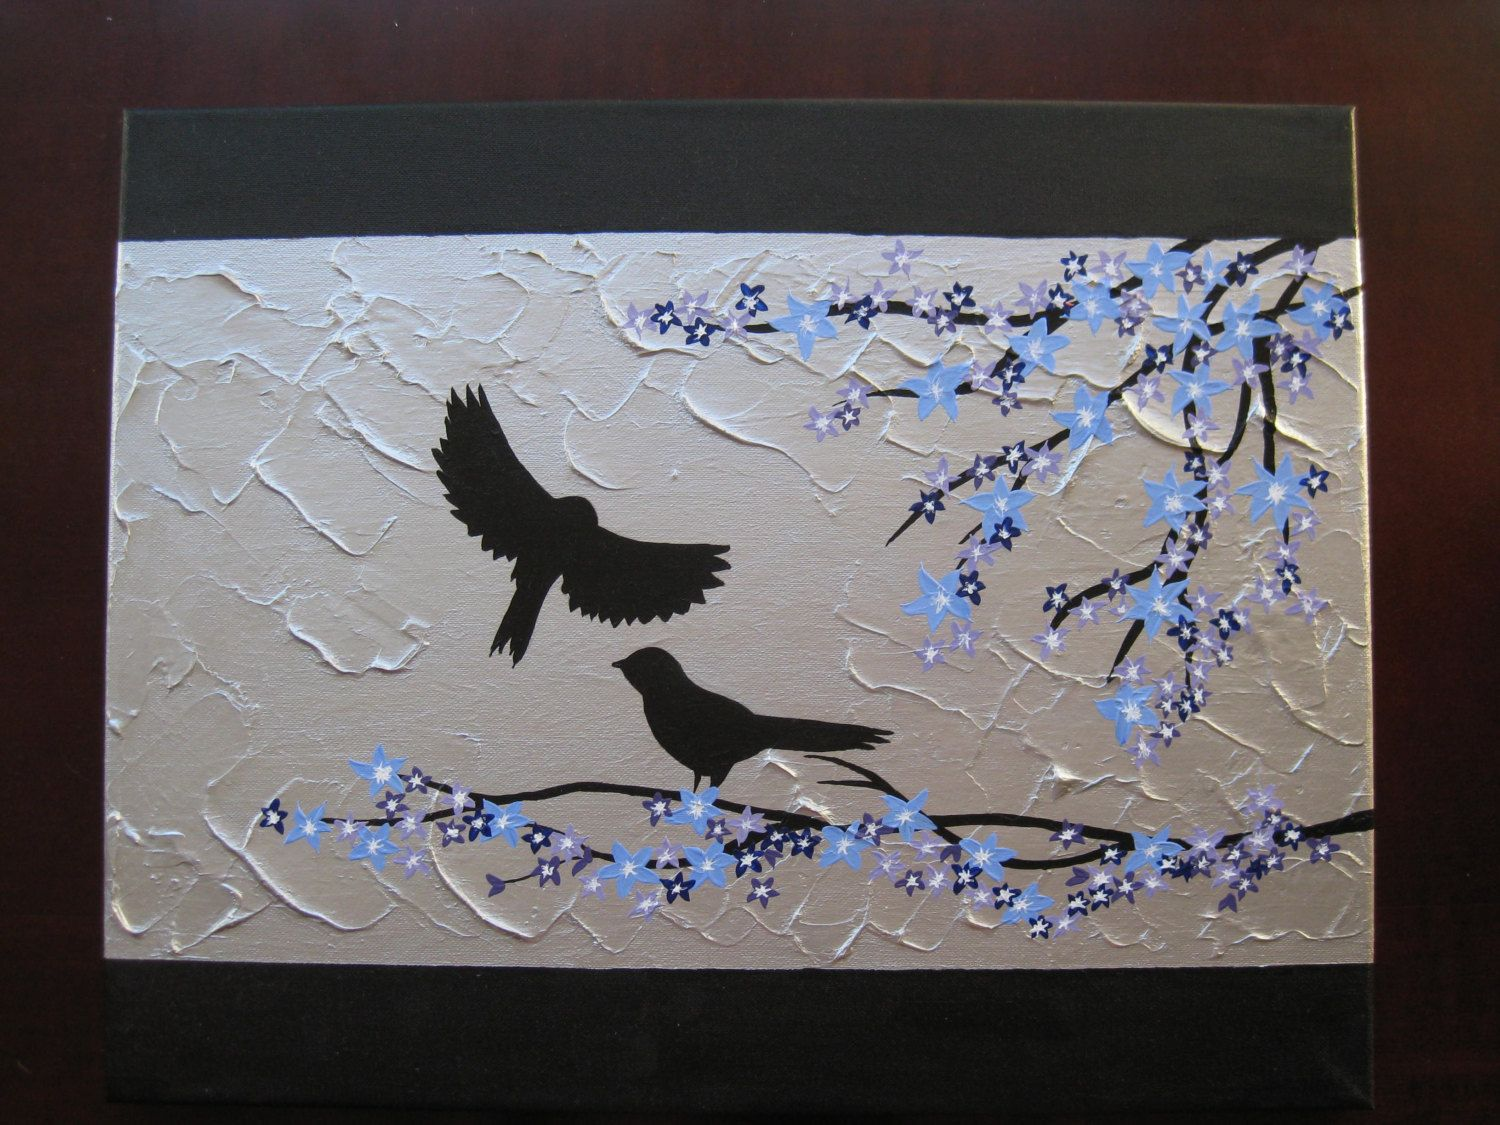 Sale textured birds painting on canvas with blue blossom wall decor sale textured birds painting on canvas with blue blossom wall decor sparrows canvases paintings bird altavistaventures Choice Image